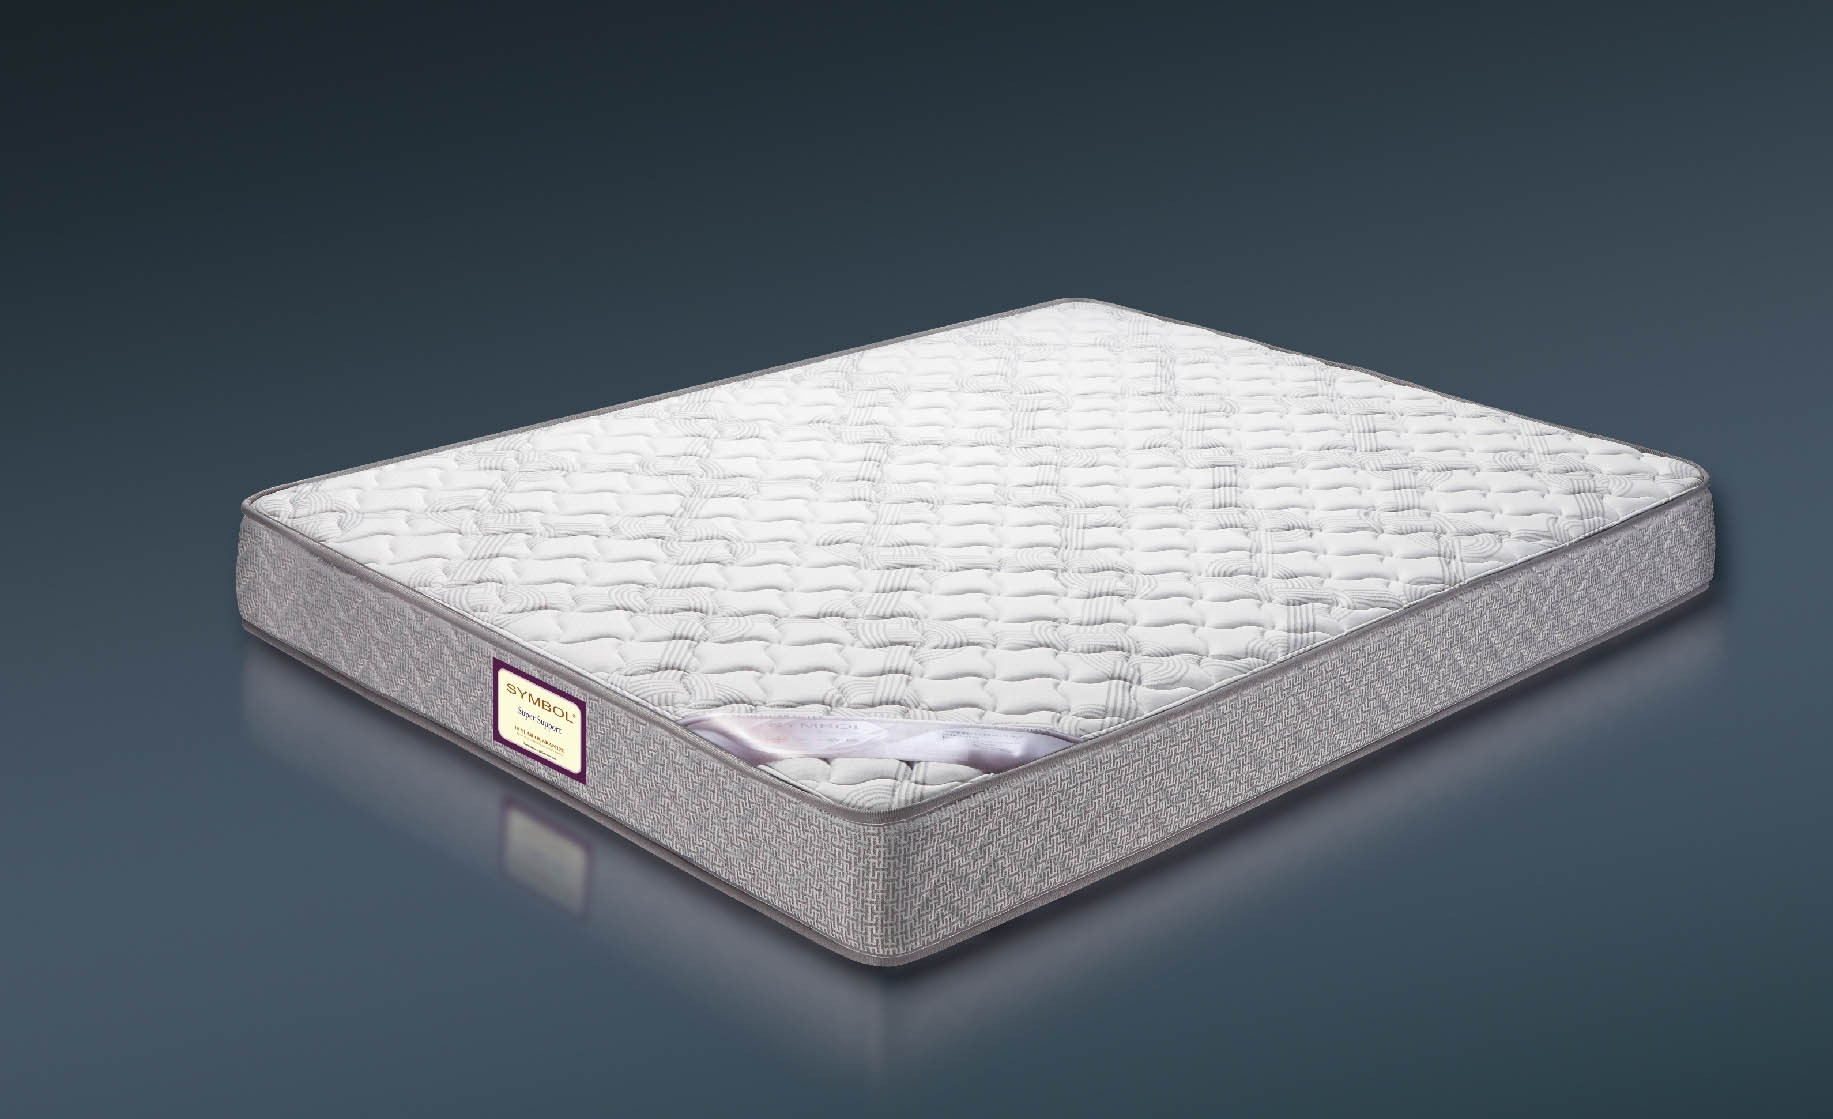 Eextra Firm Innerspring Mattress, Symbo Mattress - Super Support